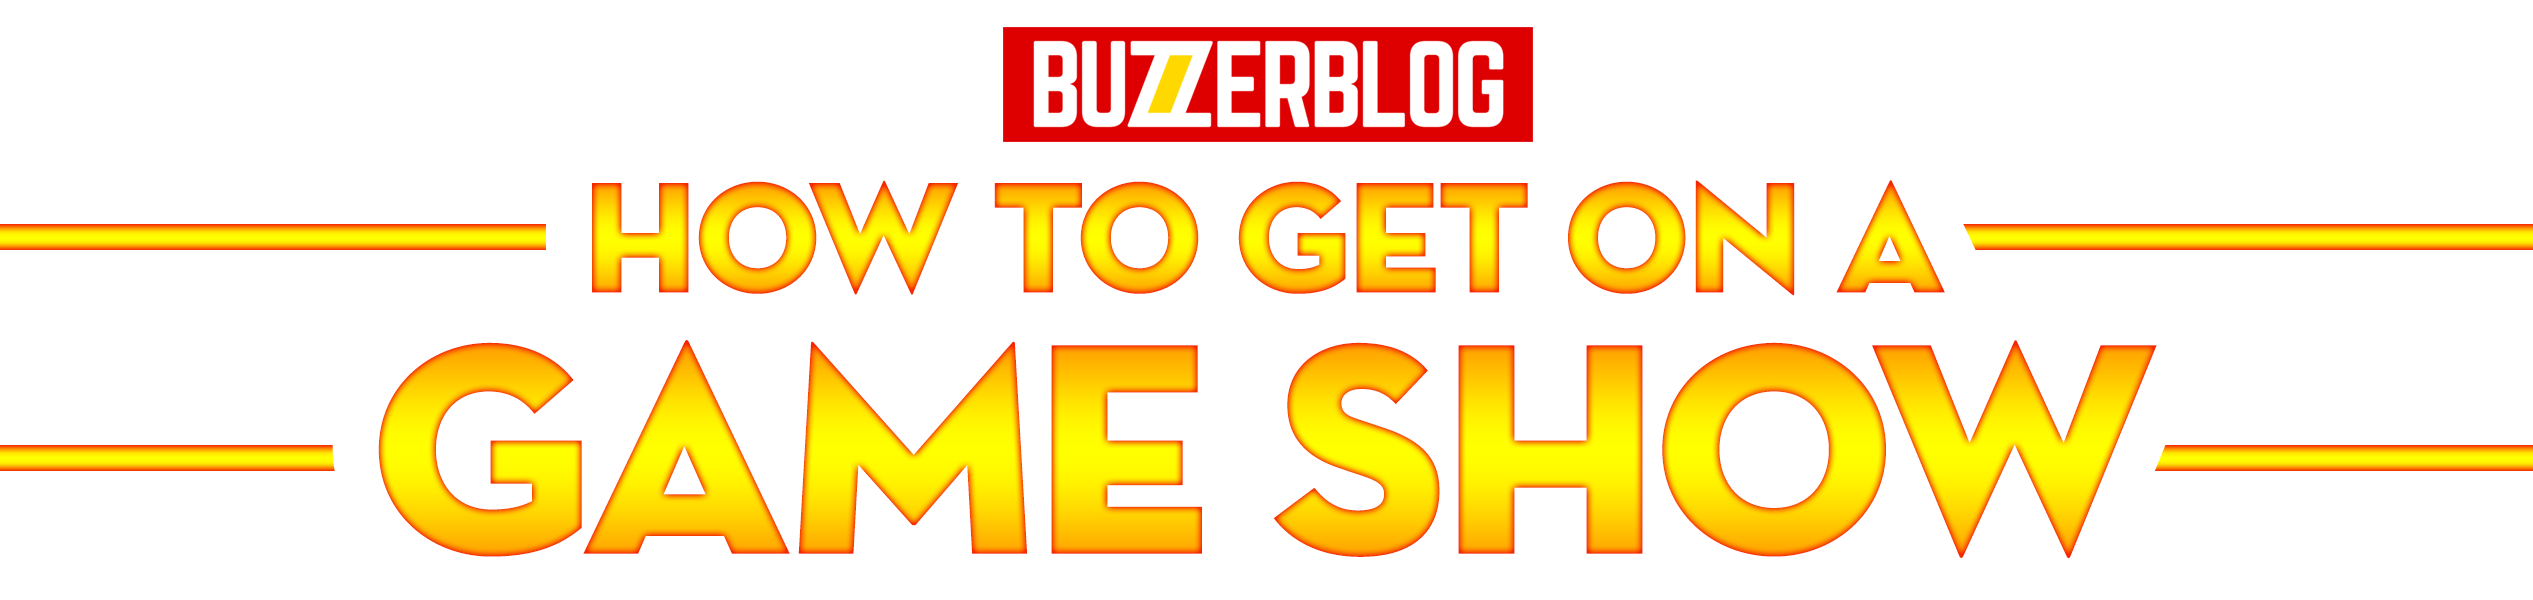 BuzzerBlog's How To Get On A Game Show